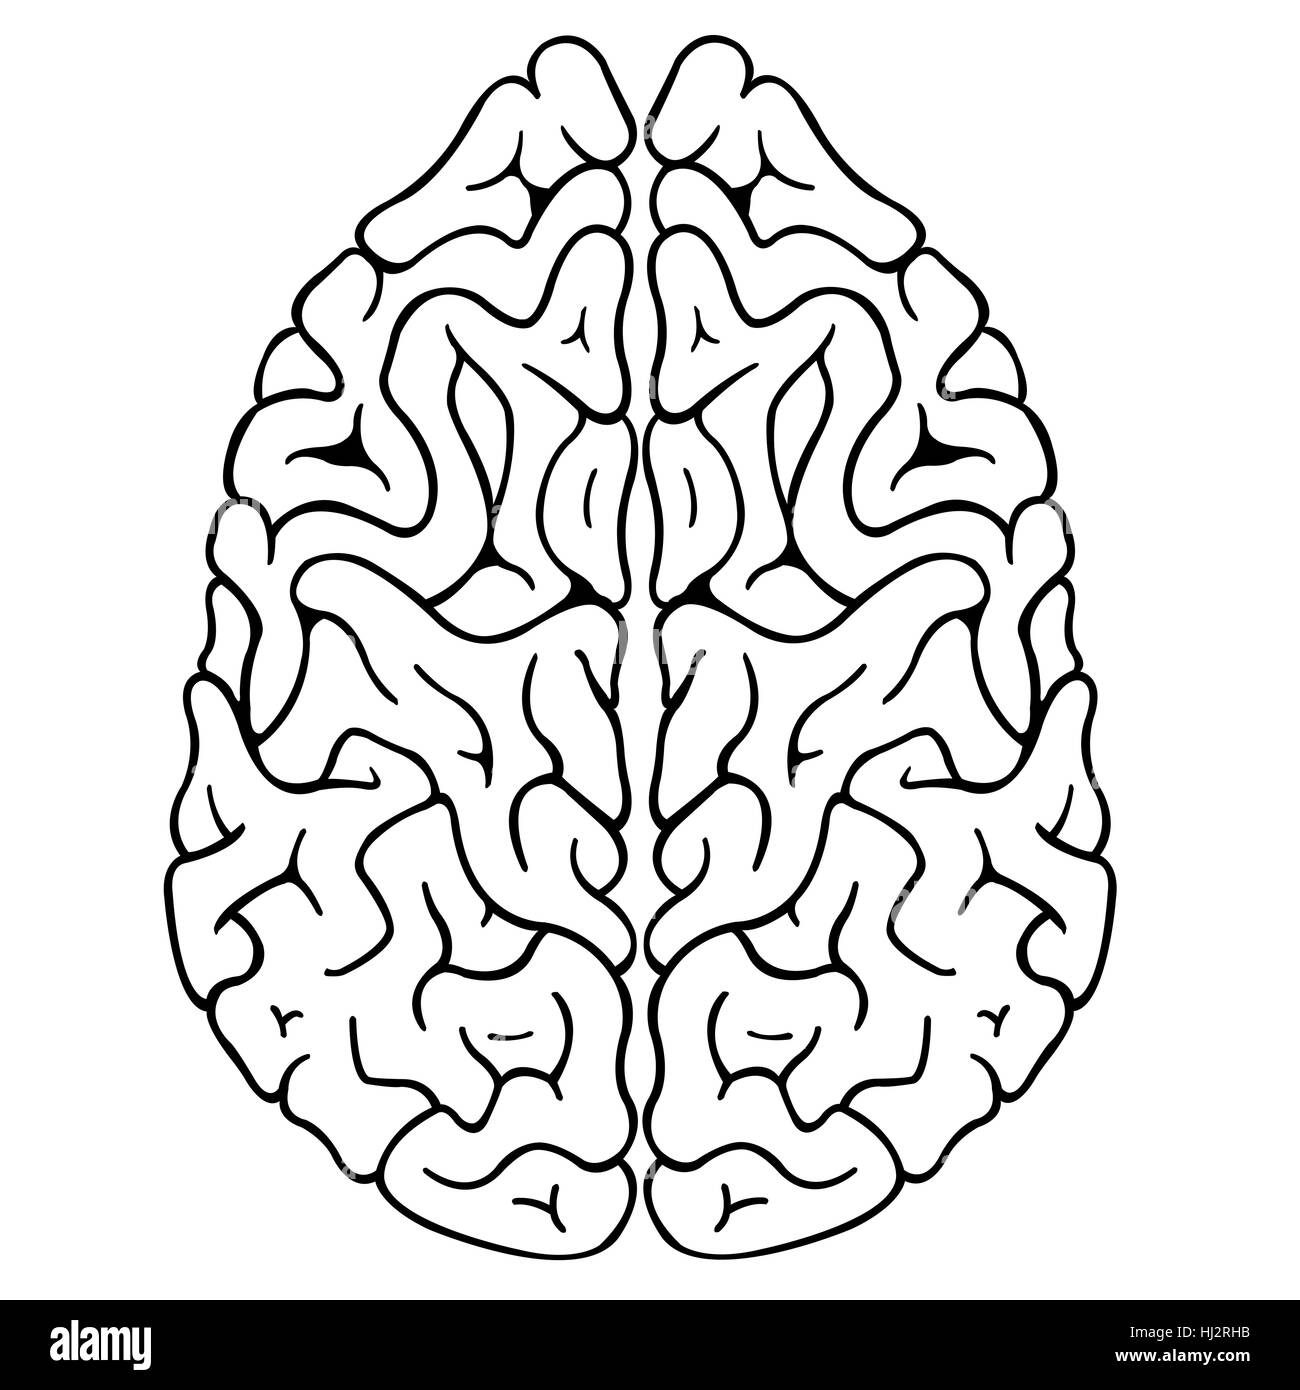 illustration of a brain isolated - Stock Image